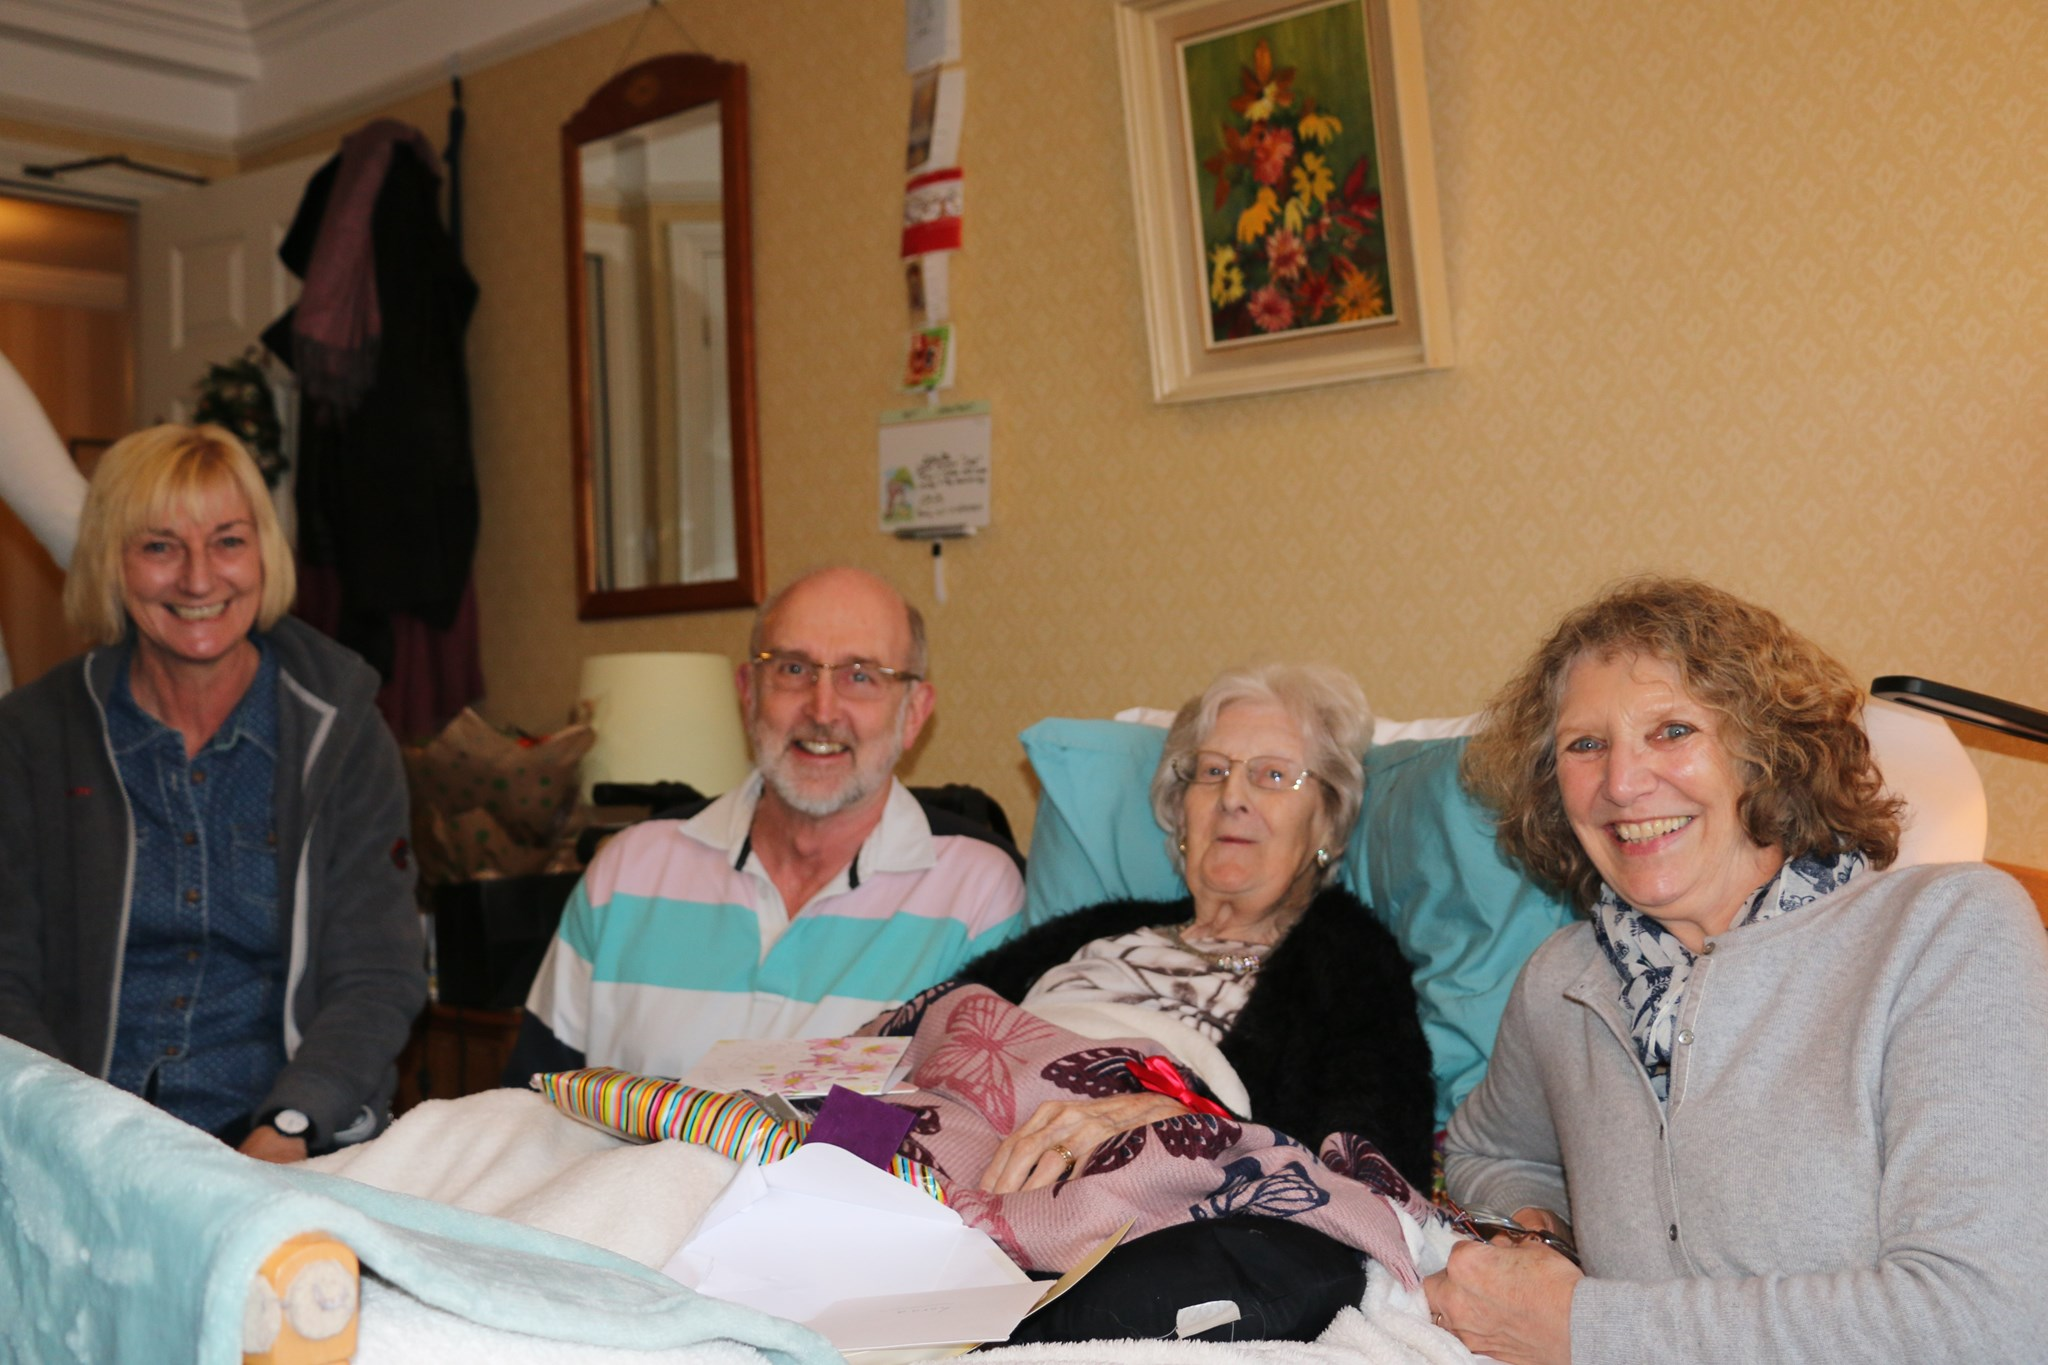 Catching up with Jenny, Keith and Sheila from Chapel Close